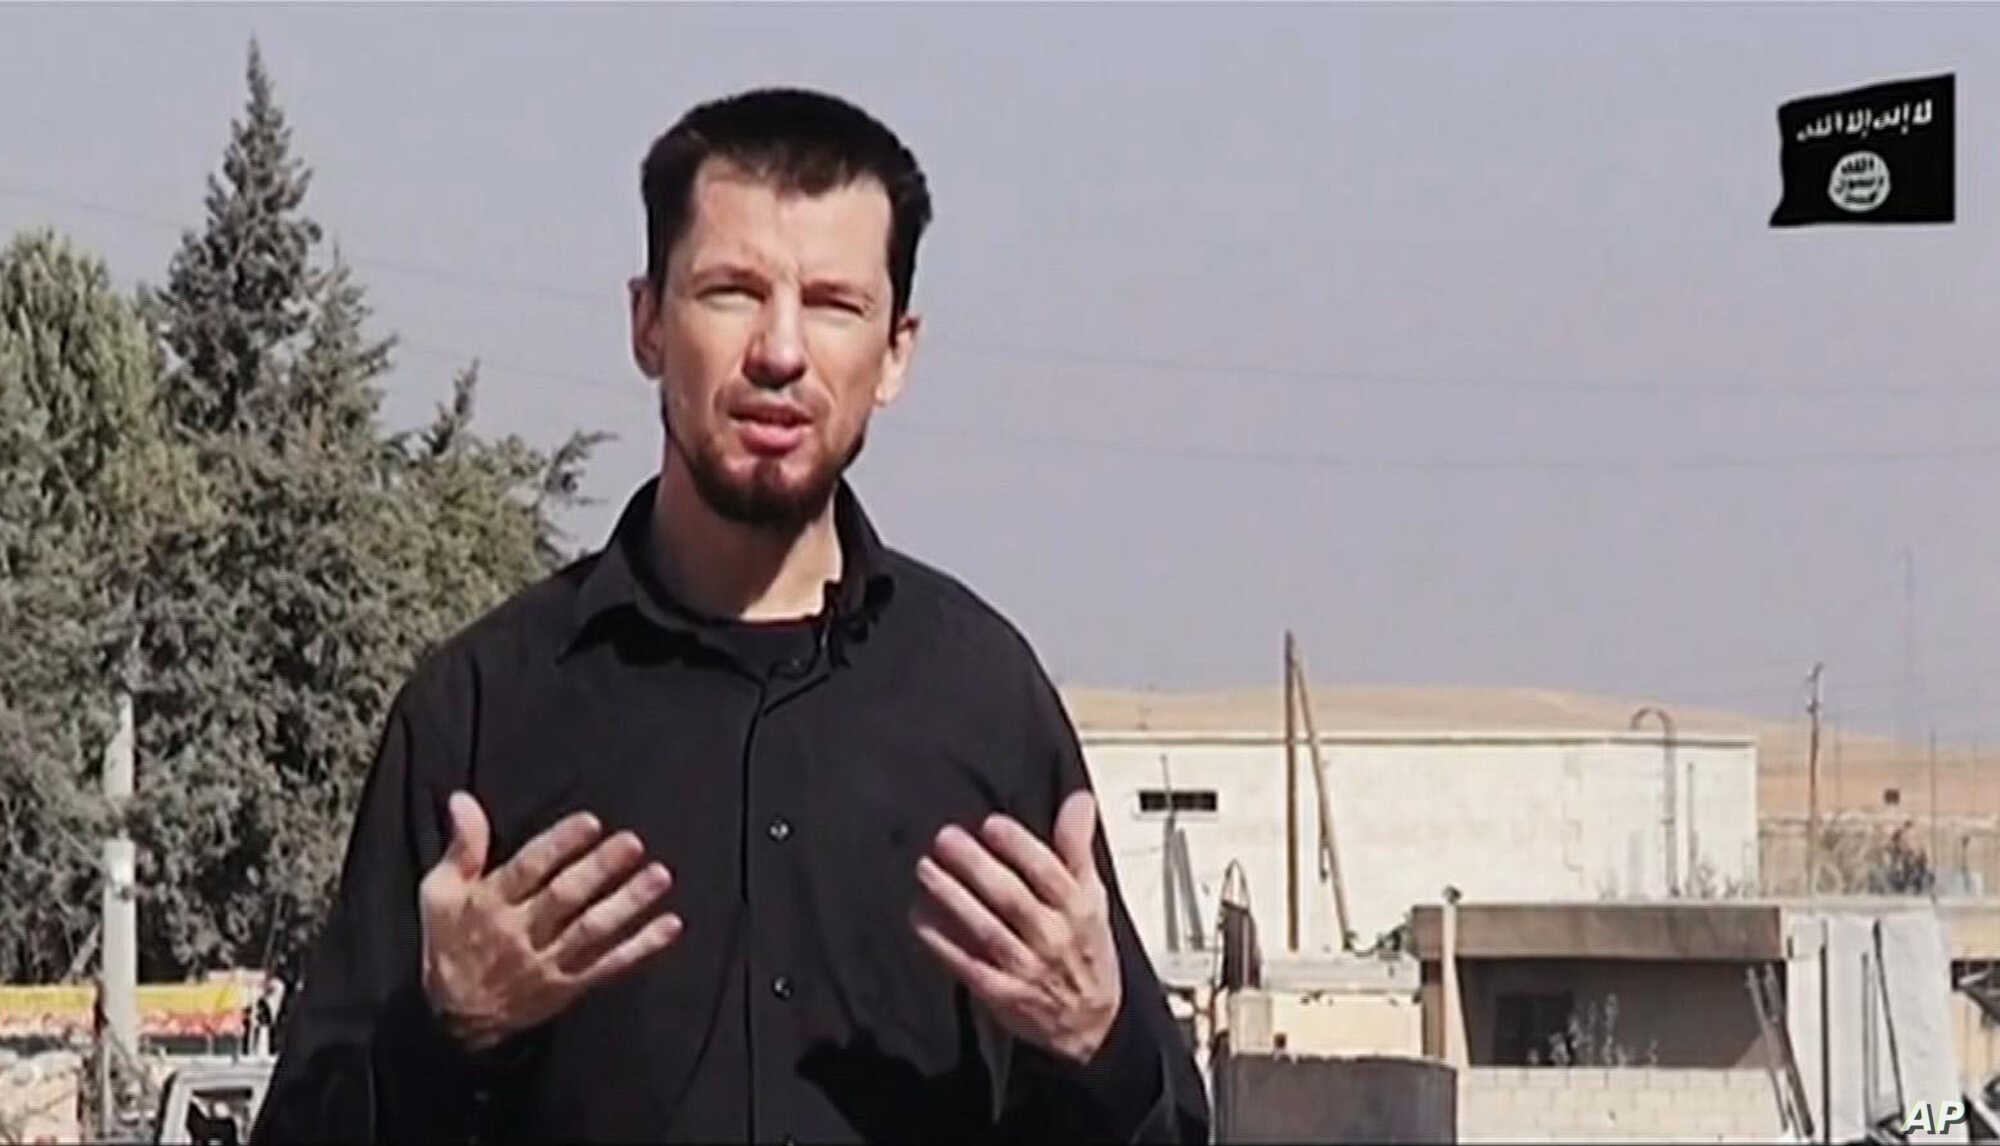 British Journalist Held Hostage in Syria May Be Alive